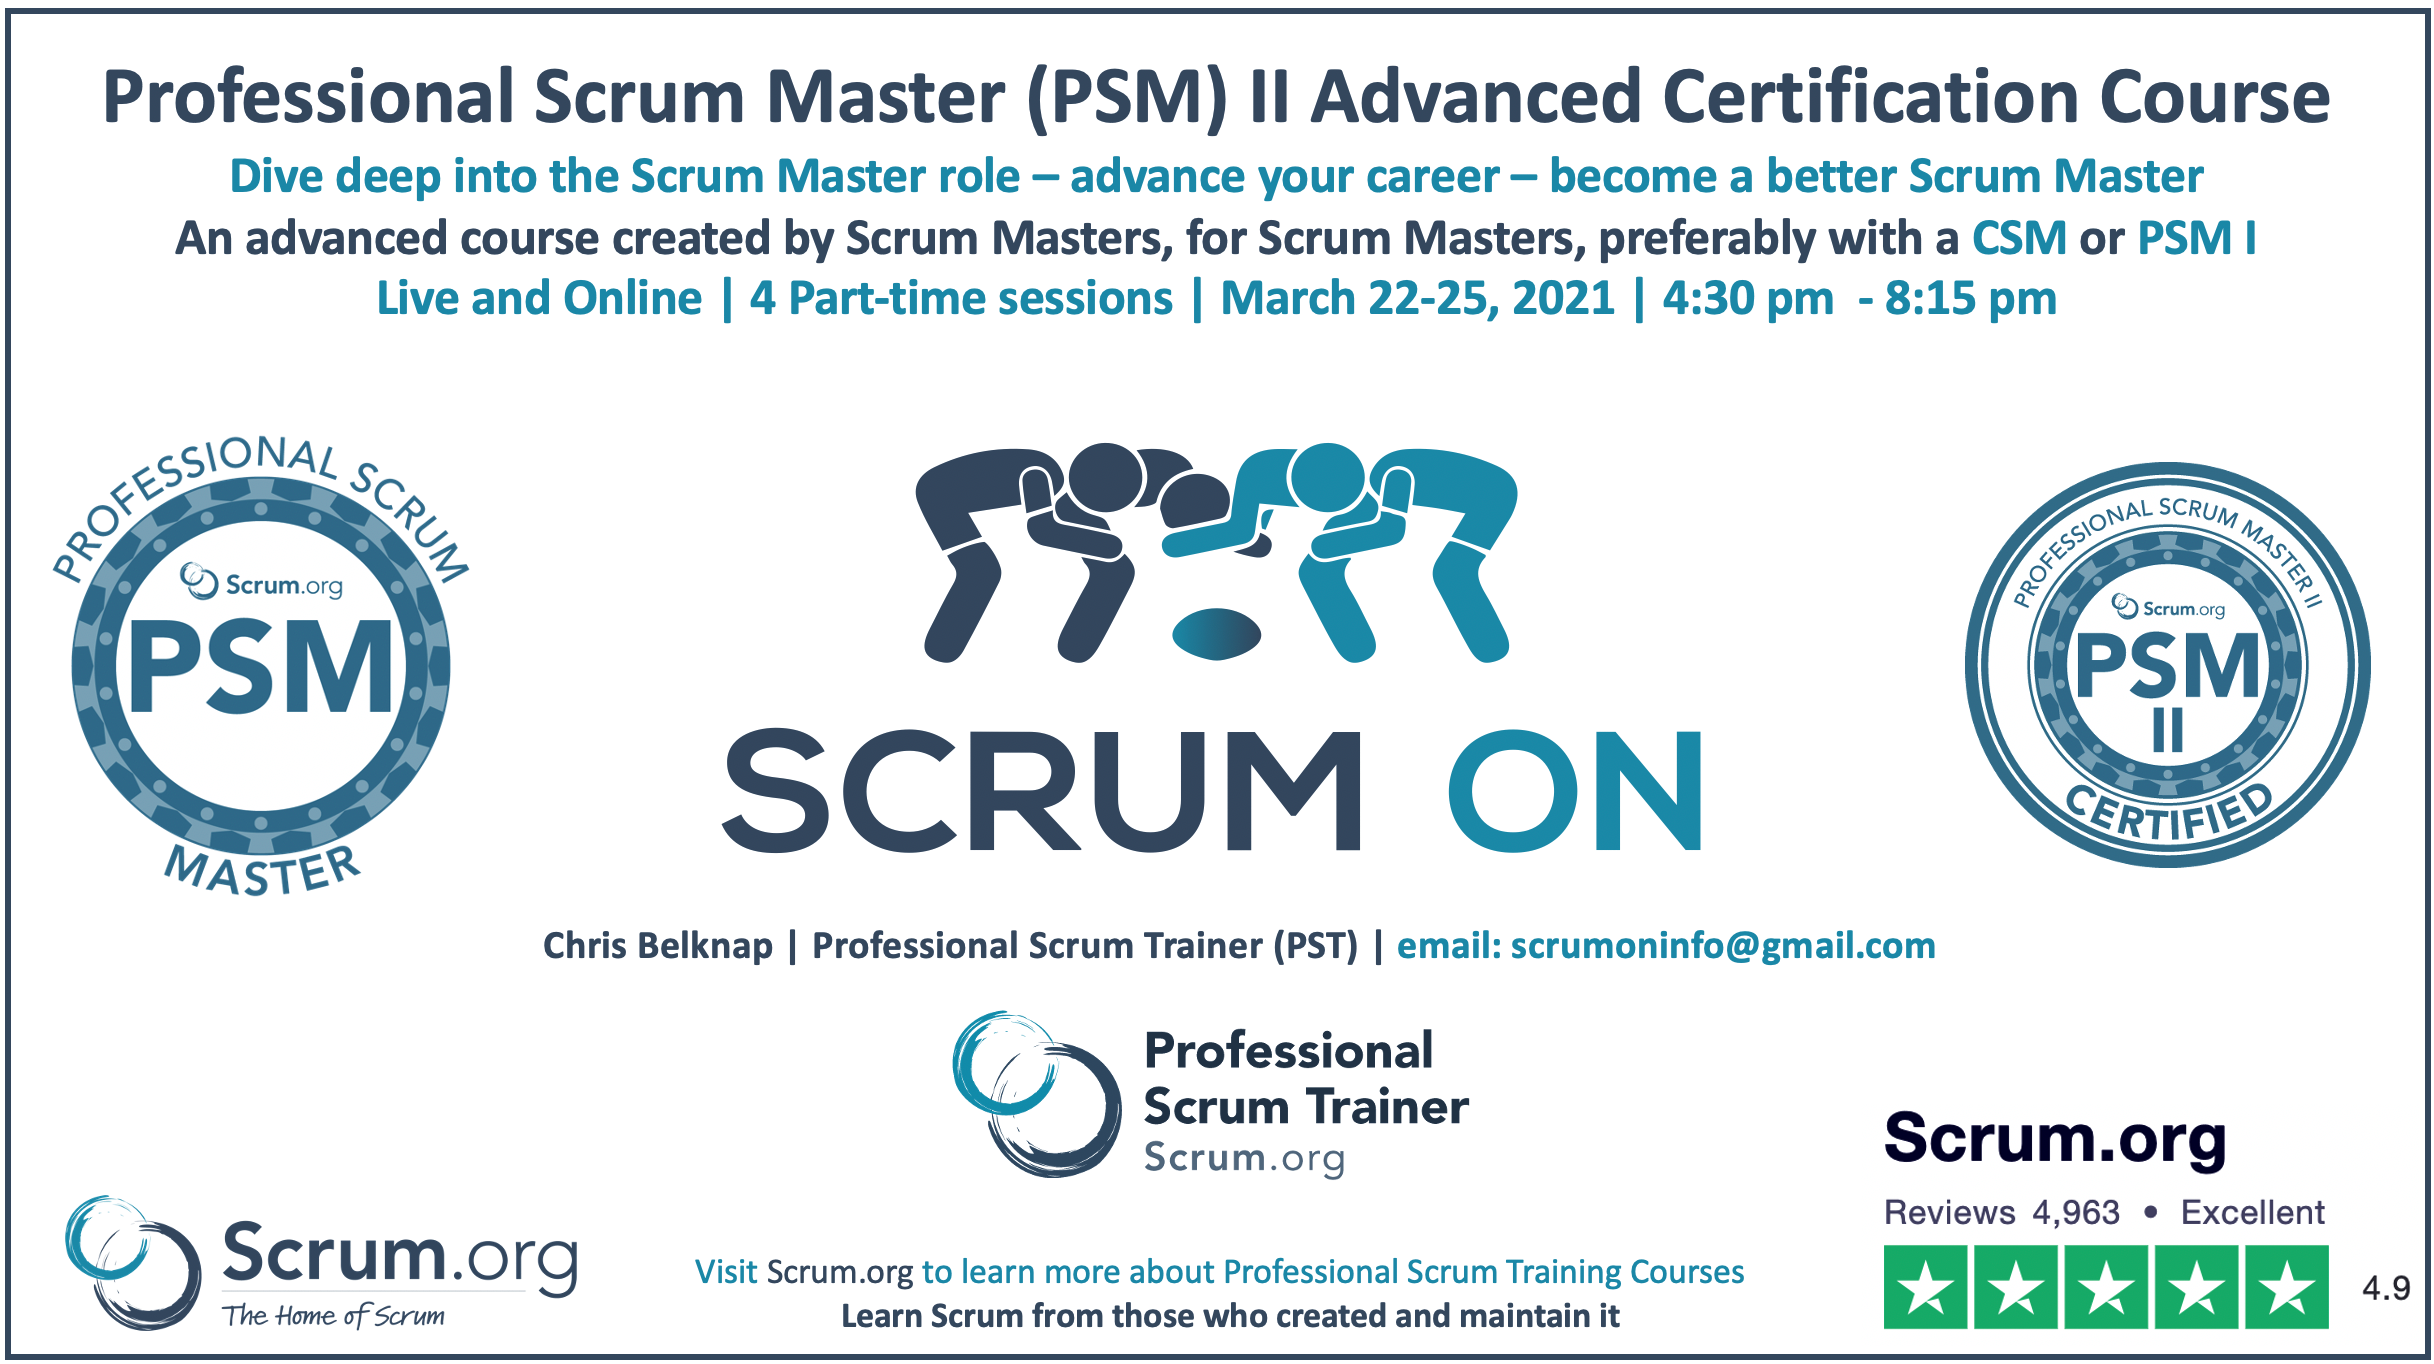 Professional Scrum Master PSM II Course with Certification